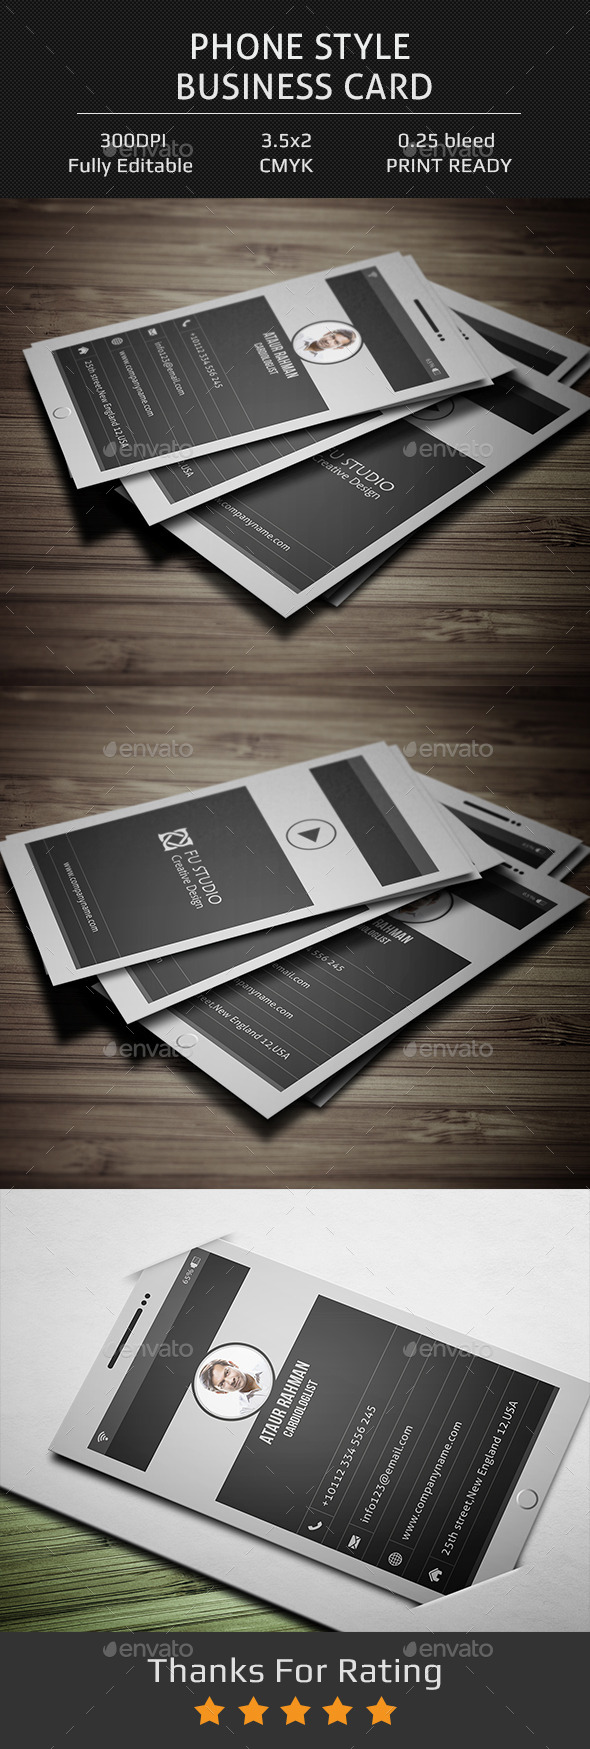 Phone Style Business Card - Creative Business Cards